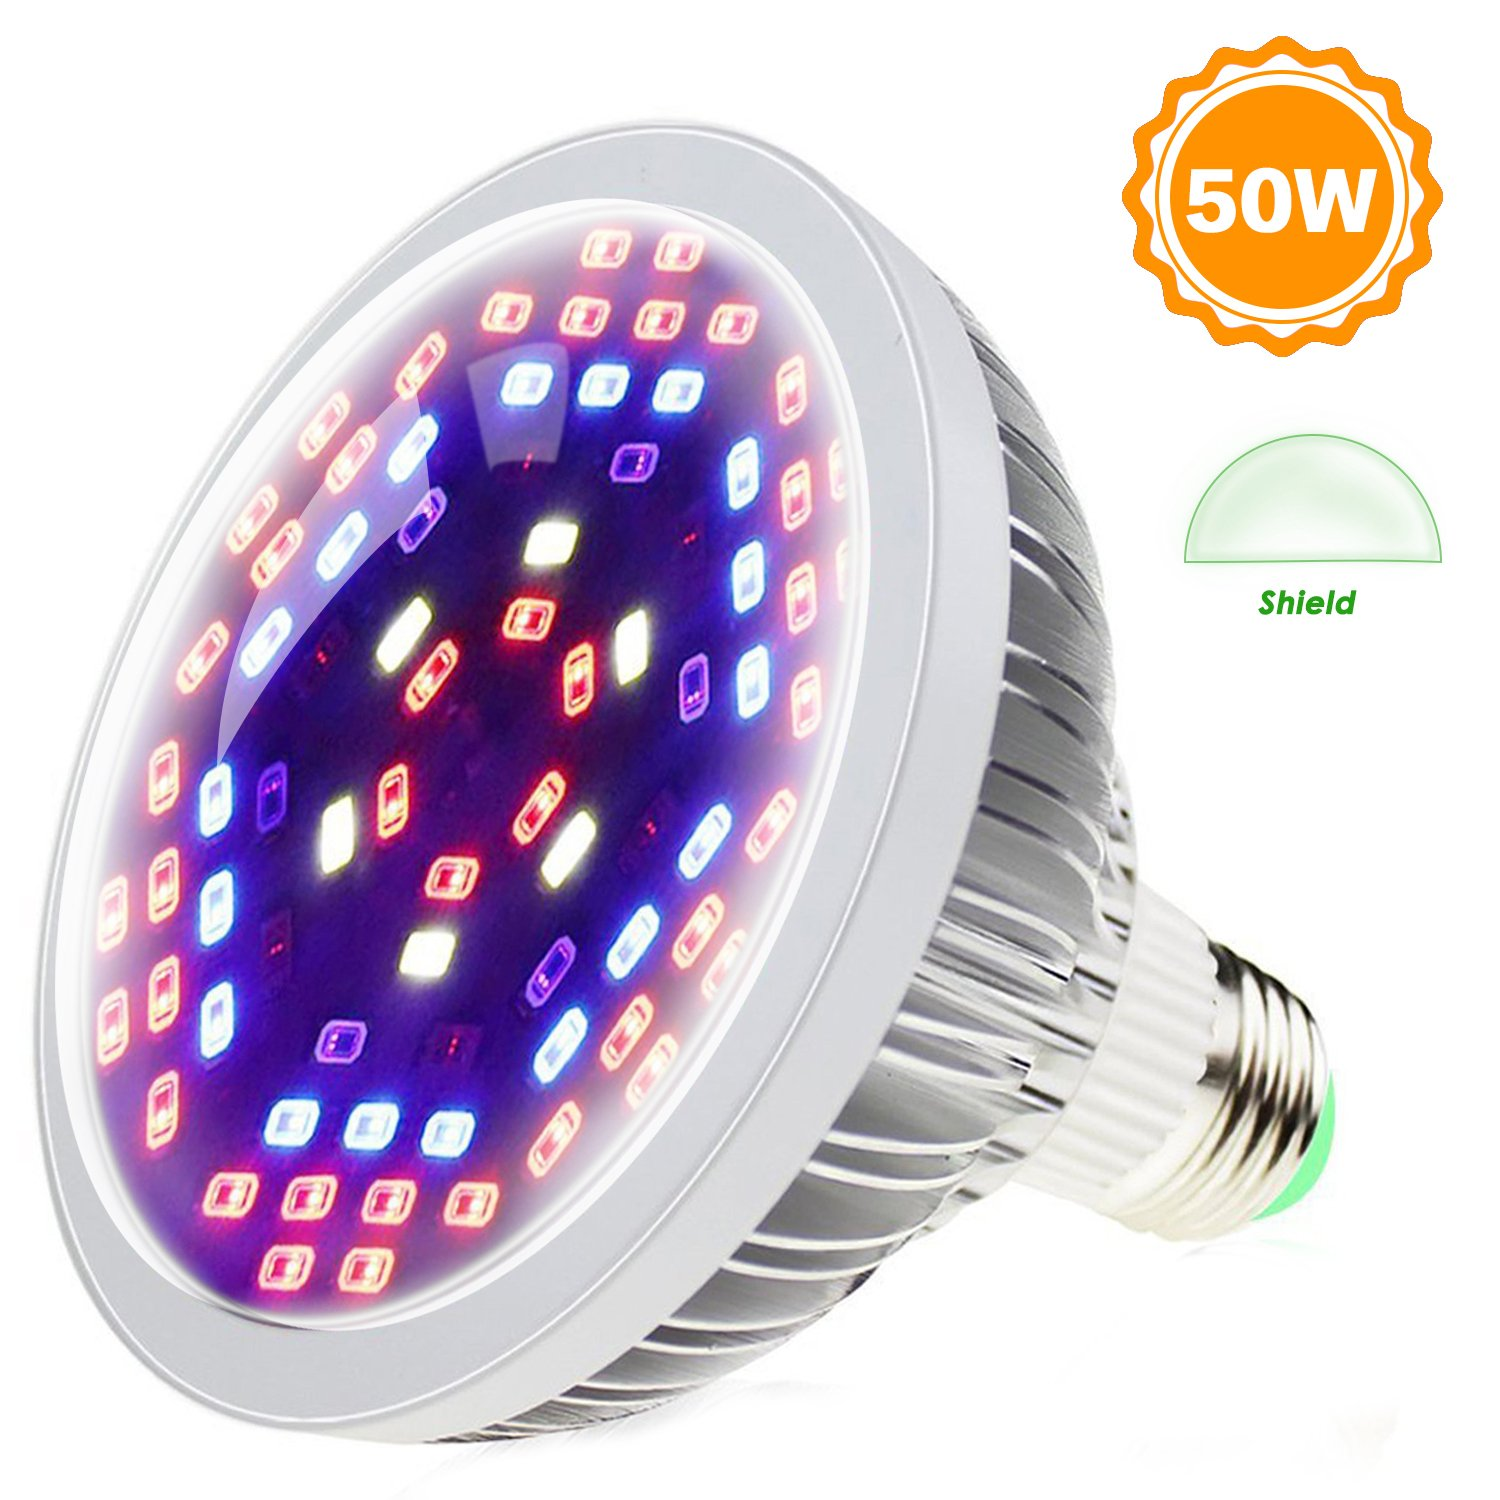 Shekar 50W Full Spectrum LED Plant Grow Light Bulb with Shield | Plant Lamp Bulb for Home, Indoor Garden Greenhouse and Hydroponic Aquatic (E27, 78LEDs)